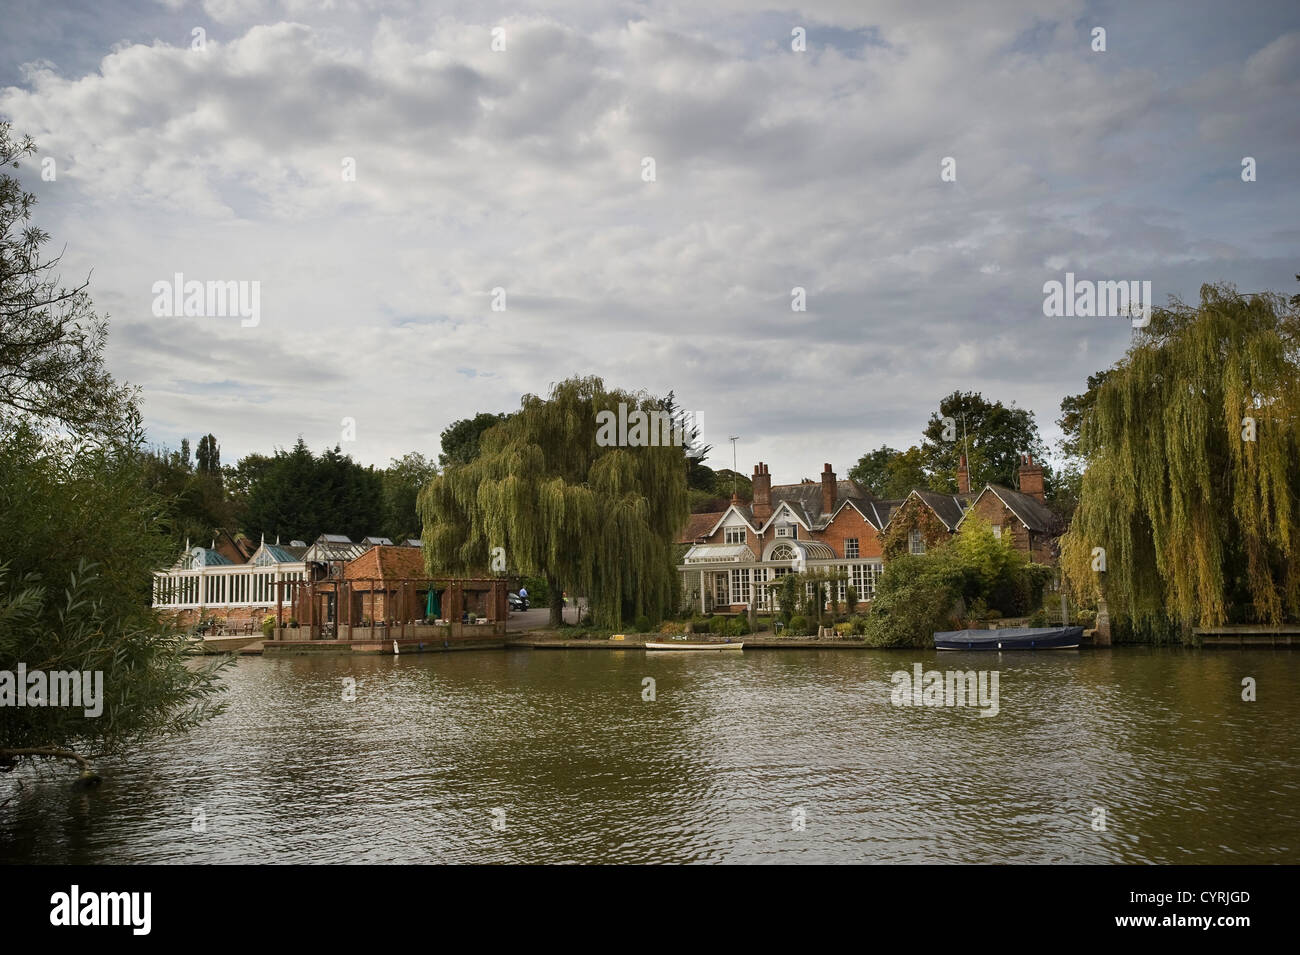 Large, expensive properties on the banks of the River Thames near South Stoke, Oxfordshire, UK - Stock Image